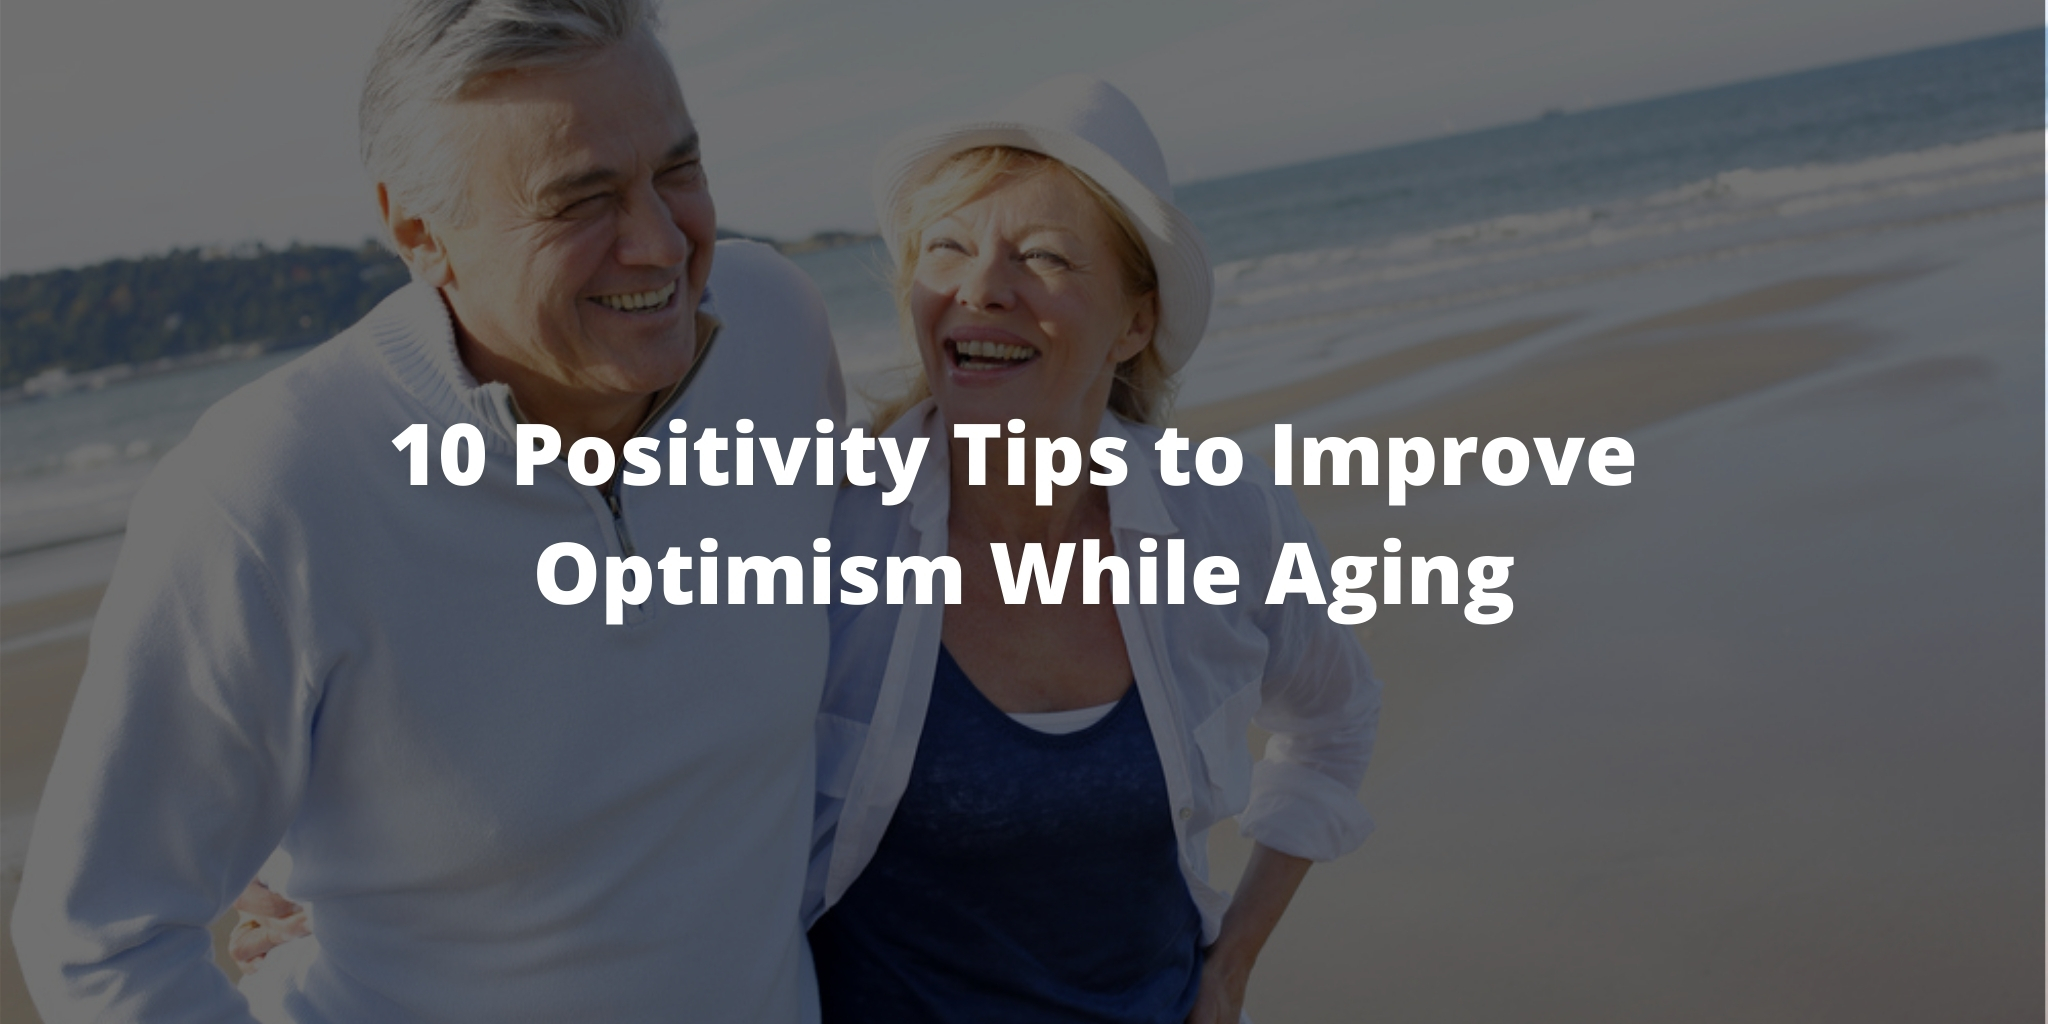 10 Positivity Tips to Improve Optimism While Aging